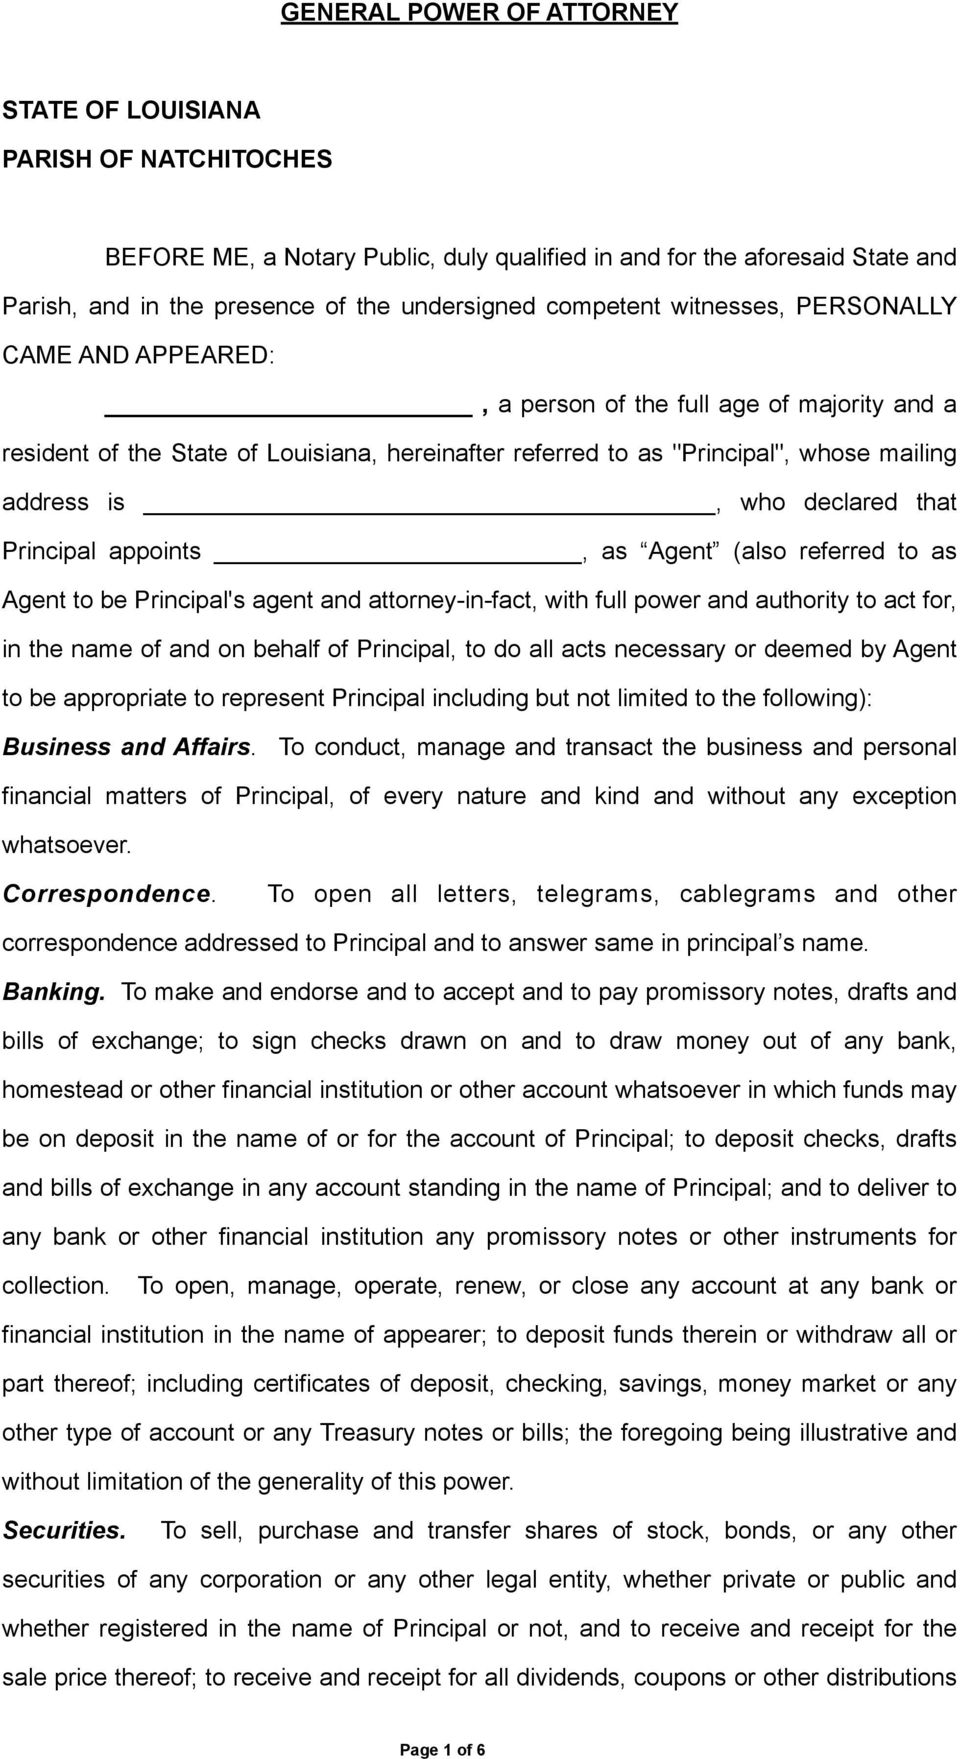 who declared that Principal appoints, as Agent (also referred to as Agent to be Principal's agent and attorney-in-fact, with full power and authority to act for, in the name of and on behalf of